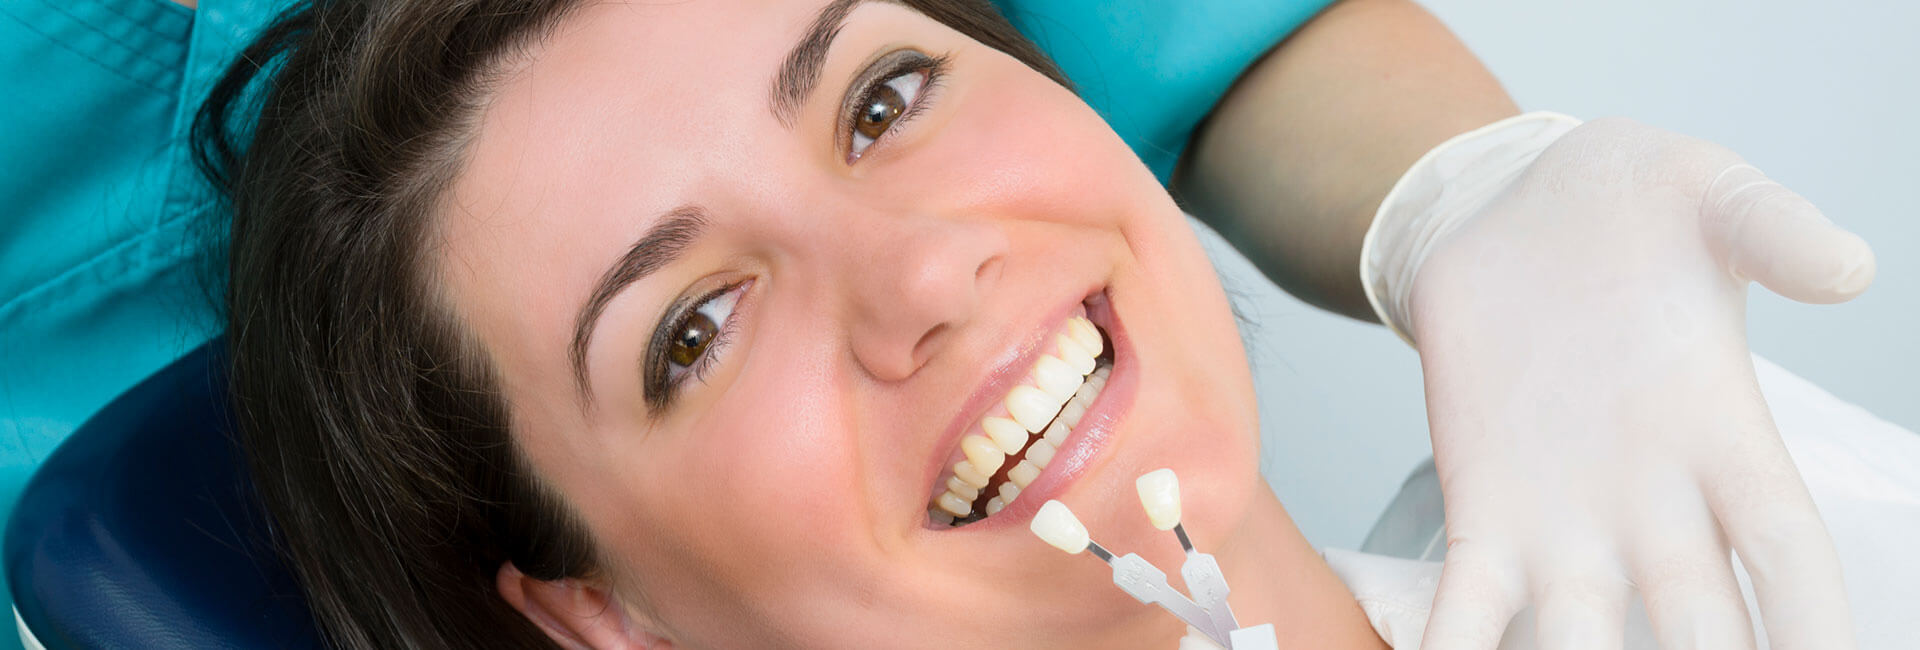 Patient smiling while dentist is comparing a pair of dental prosthetics